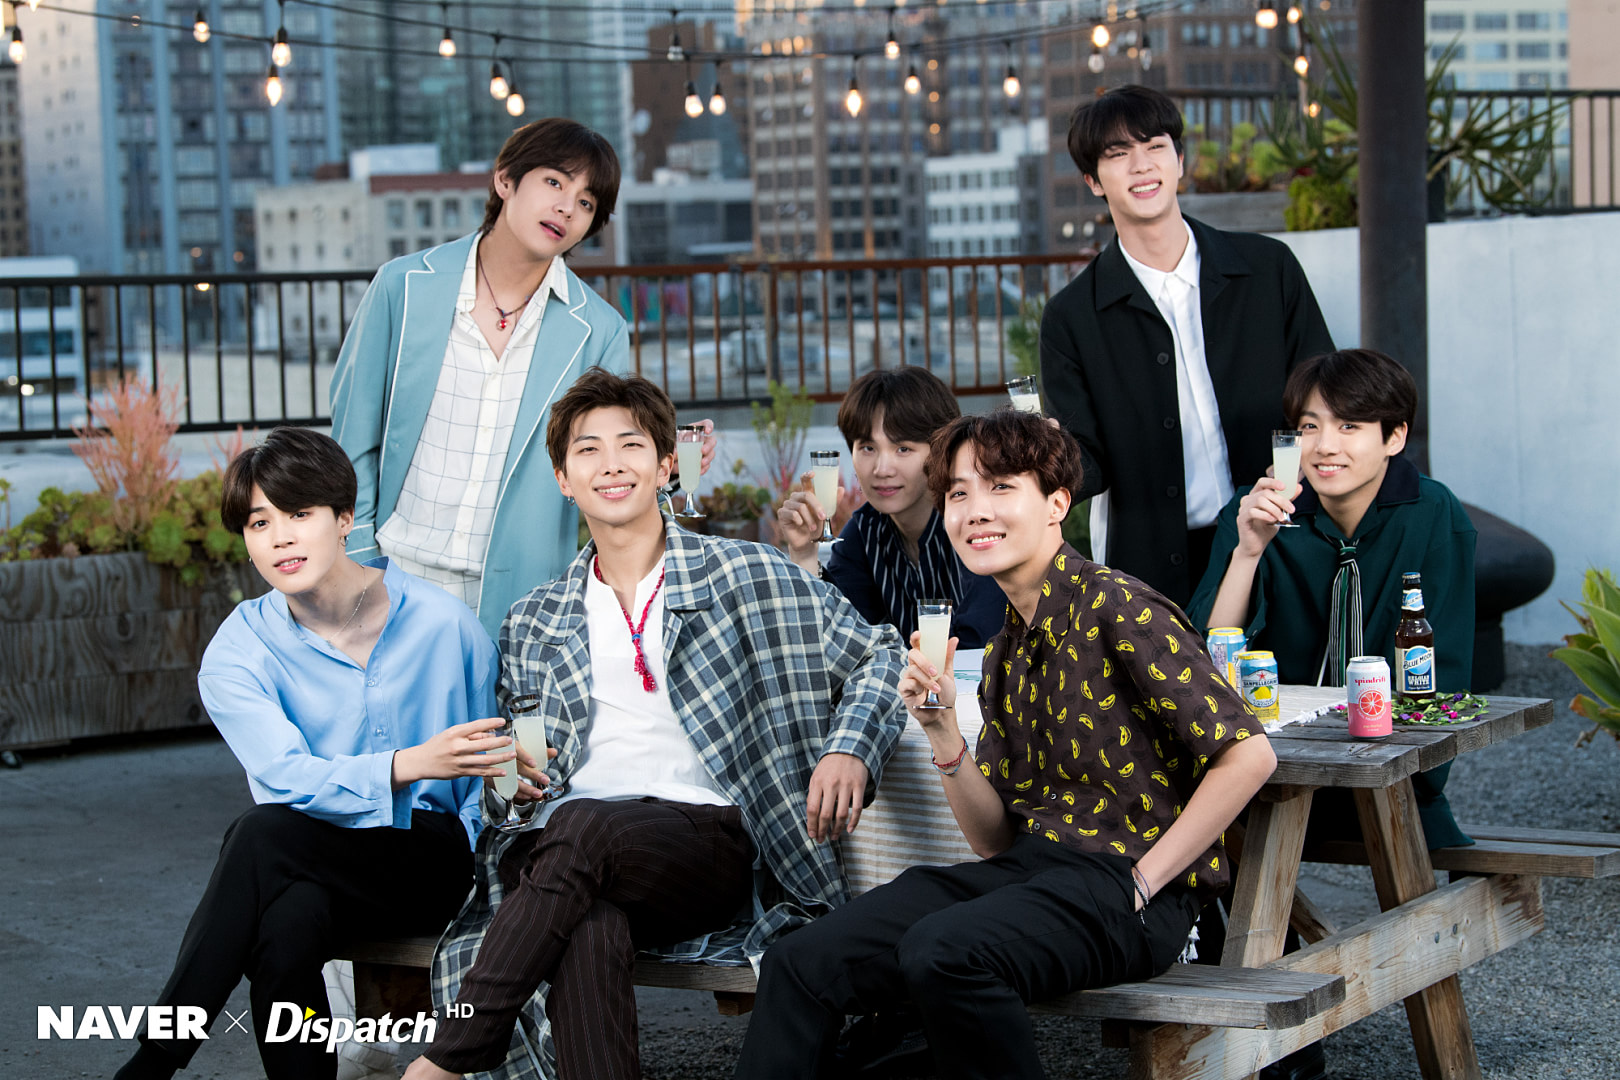 zpr6 45867 - BTS Updated photo With Naver And dispatch